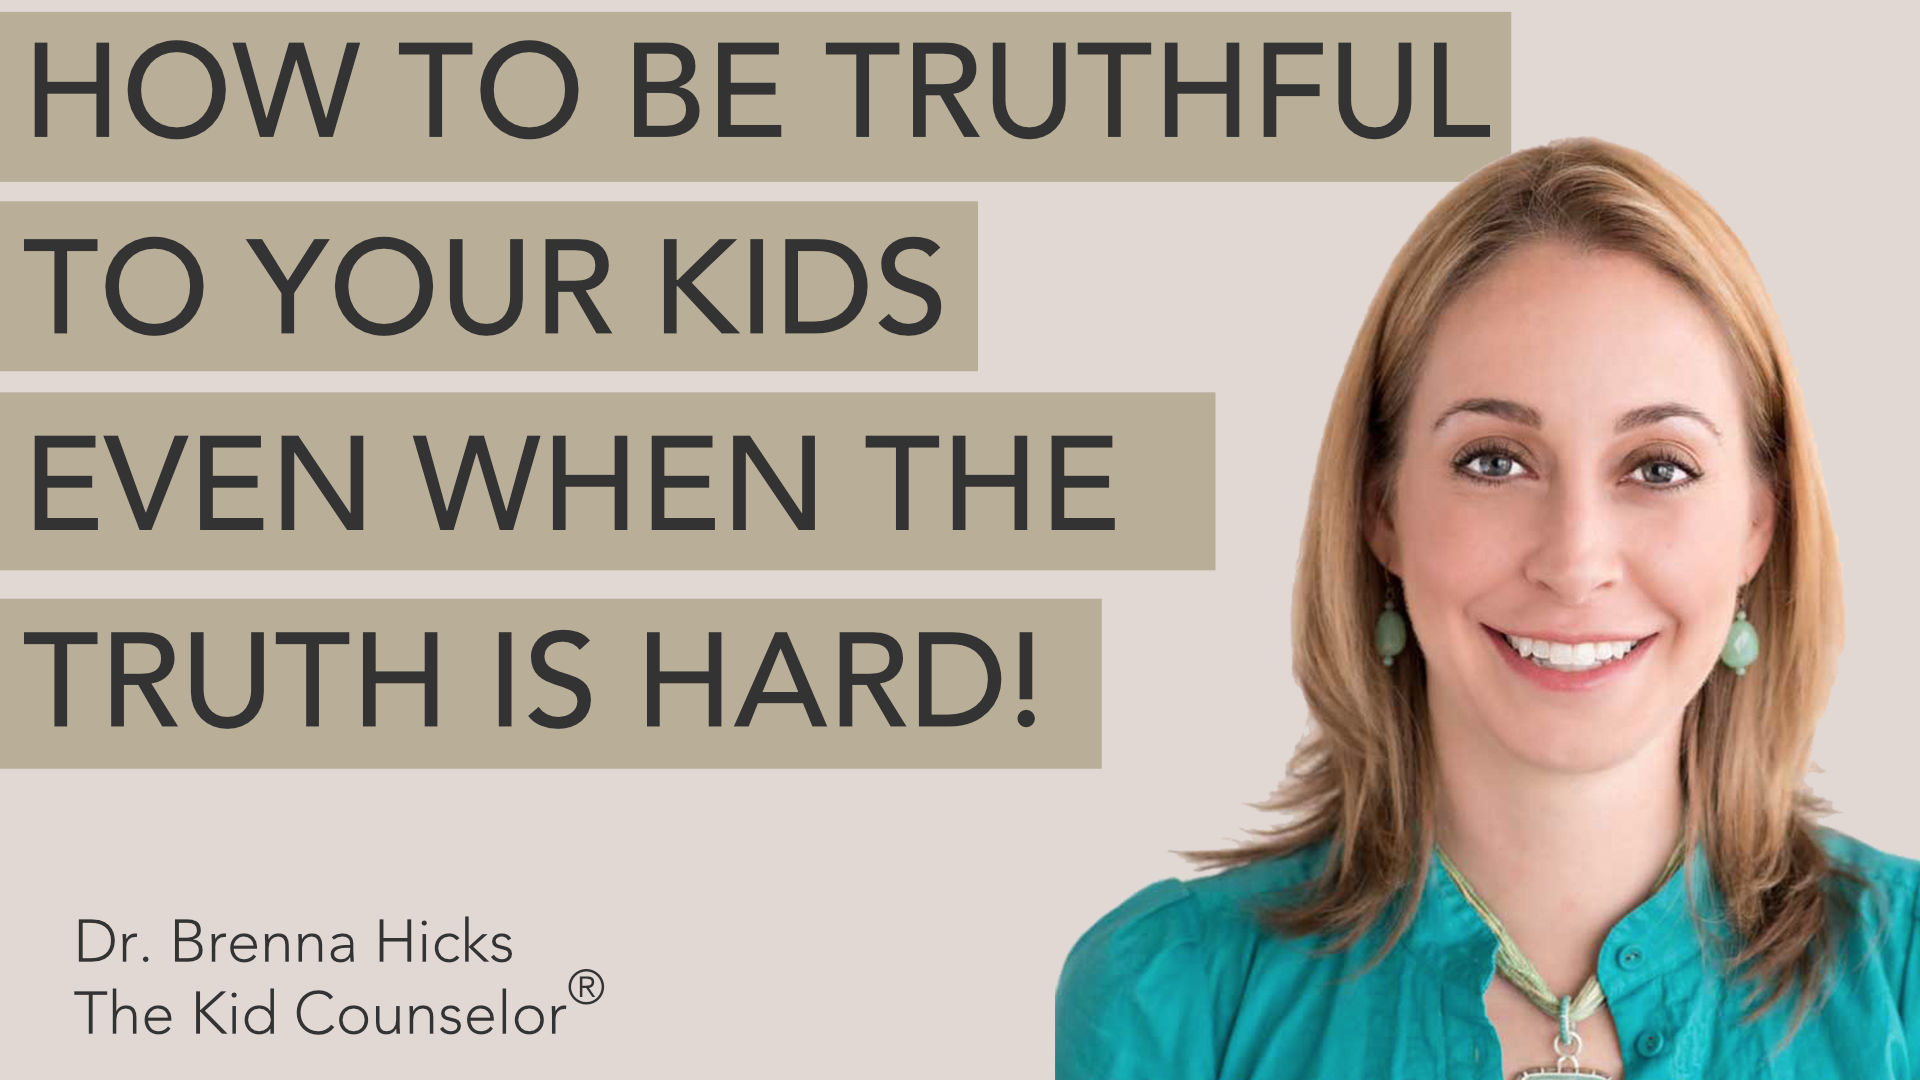 How to be truthful with your kids, even when the truth is hard! (great advice for adoptive families)